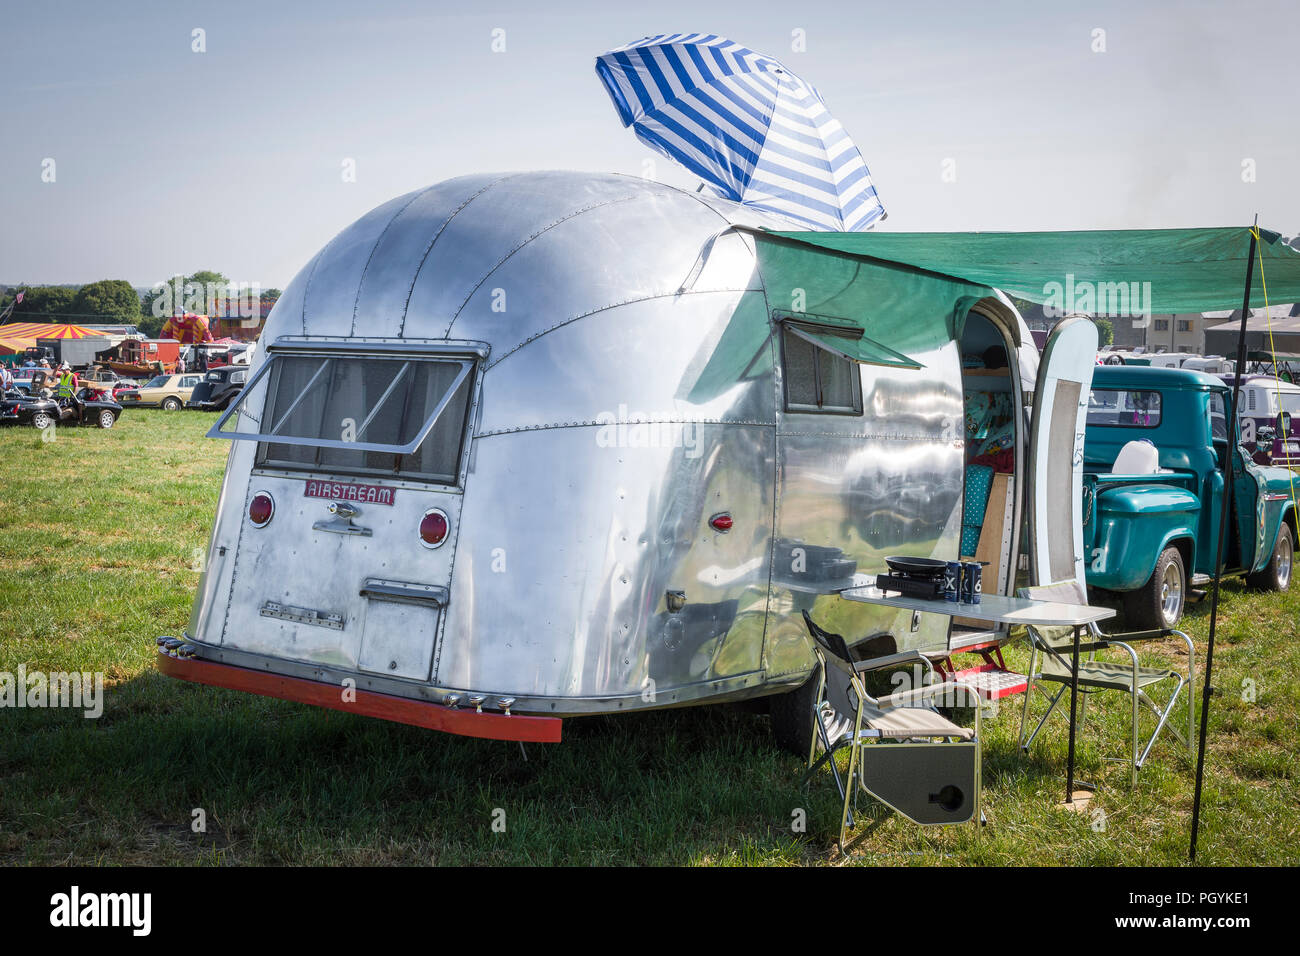 An old American Airstream streamlined caravan at Heddington Country Fair and Steam show in Wiltshire England UK - Stock Image